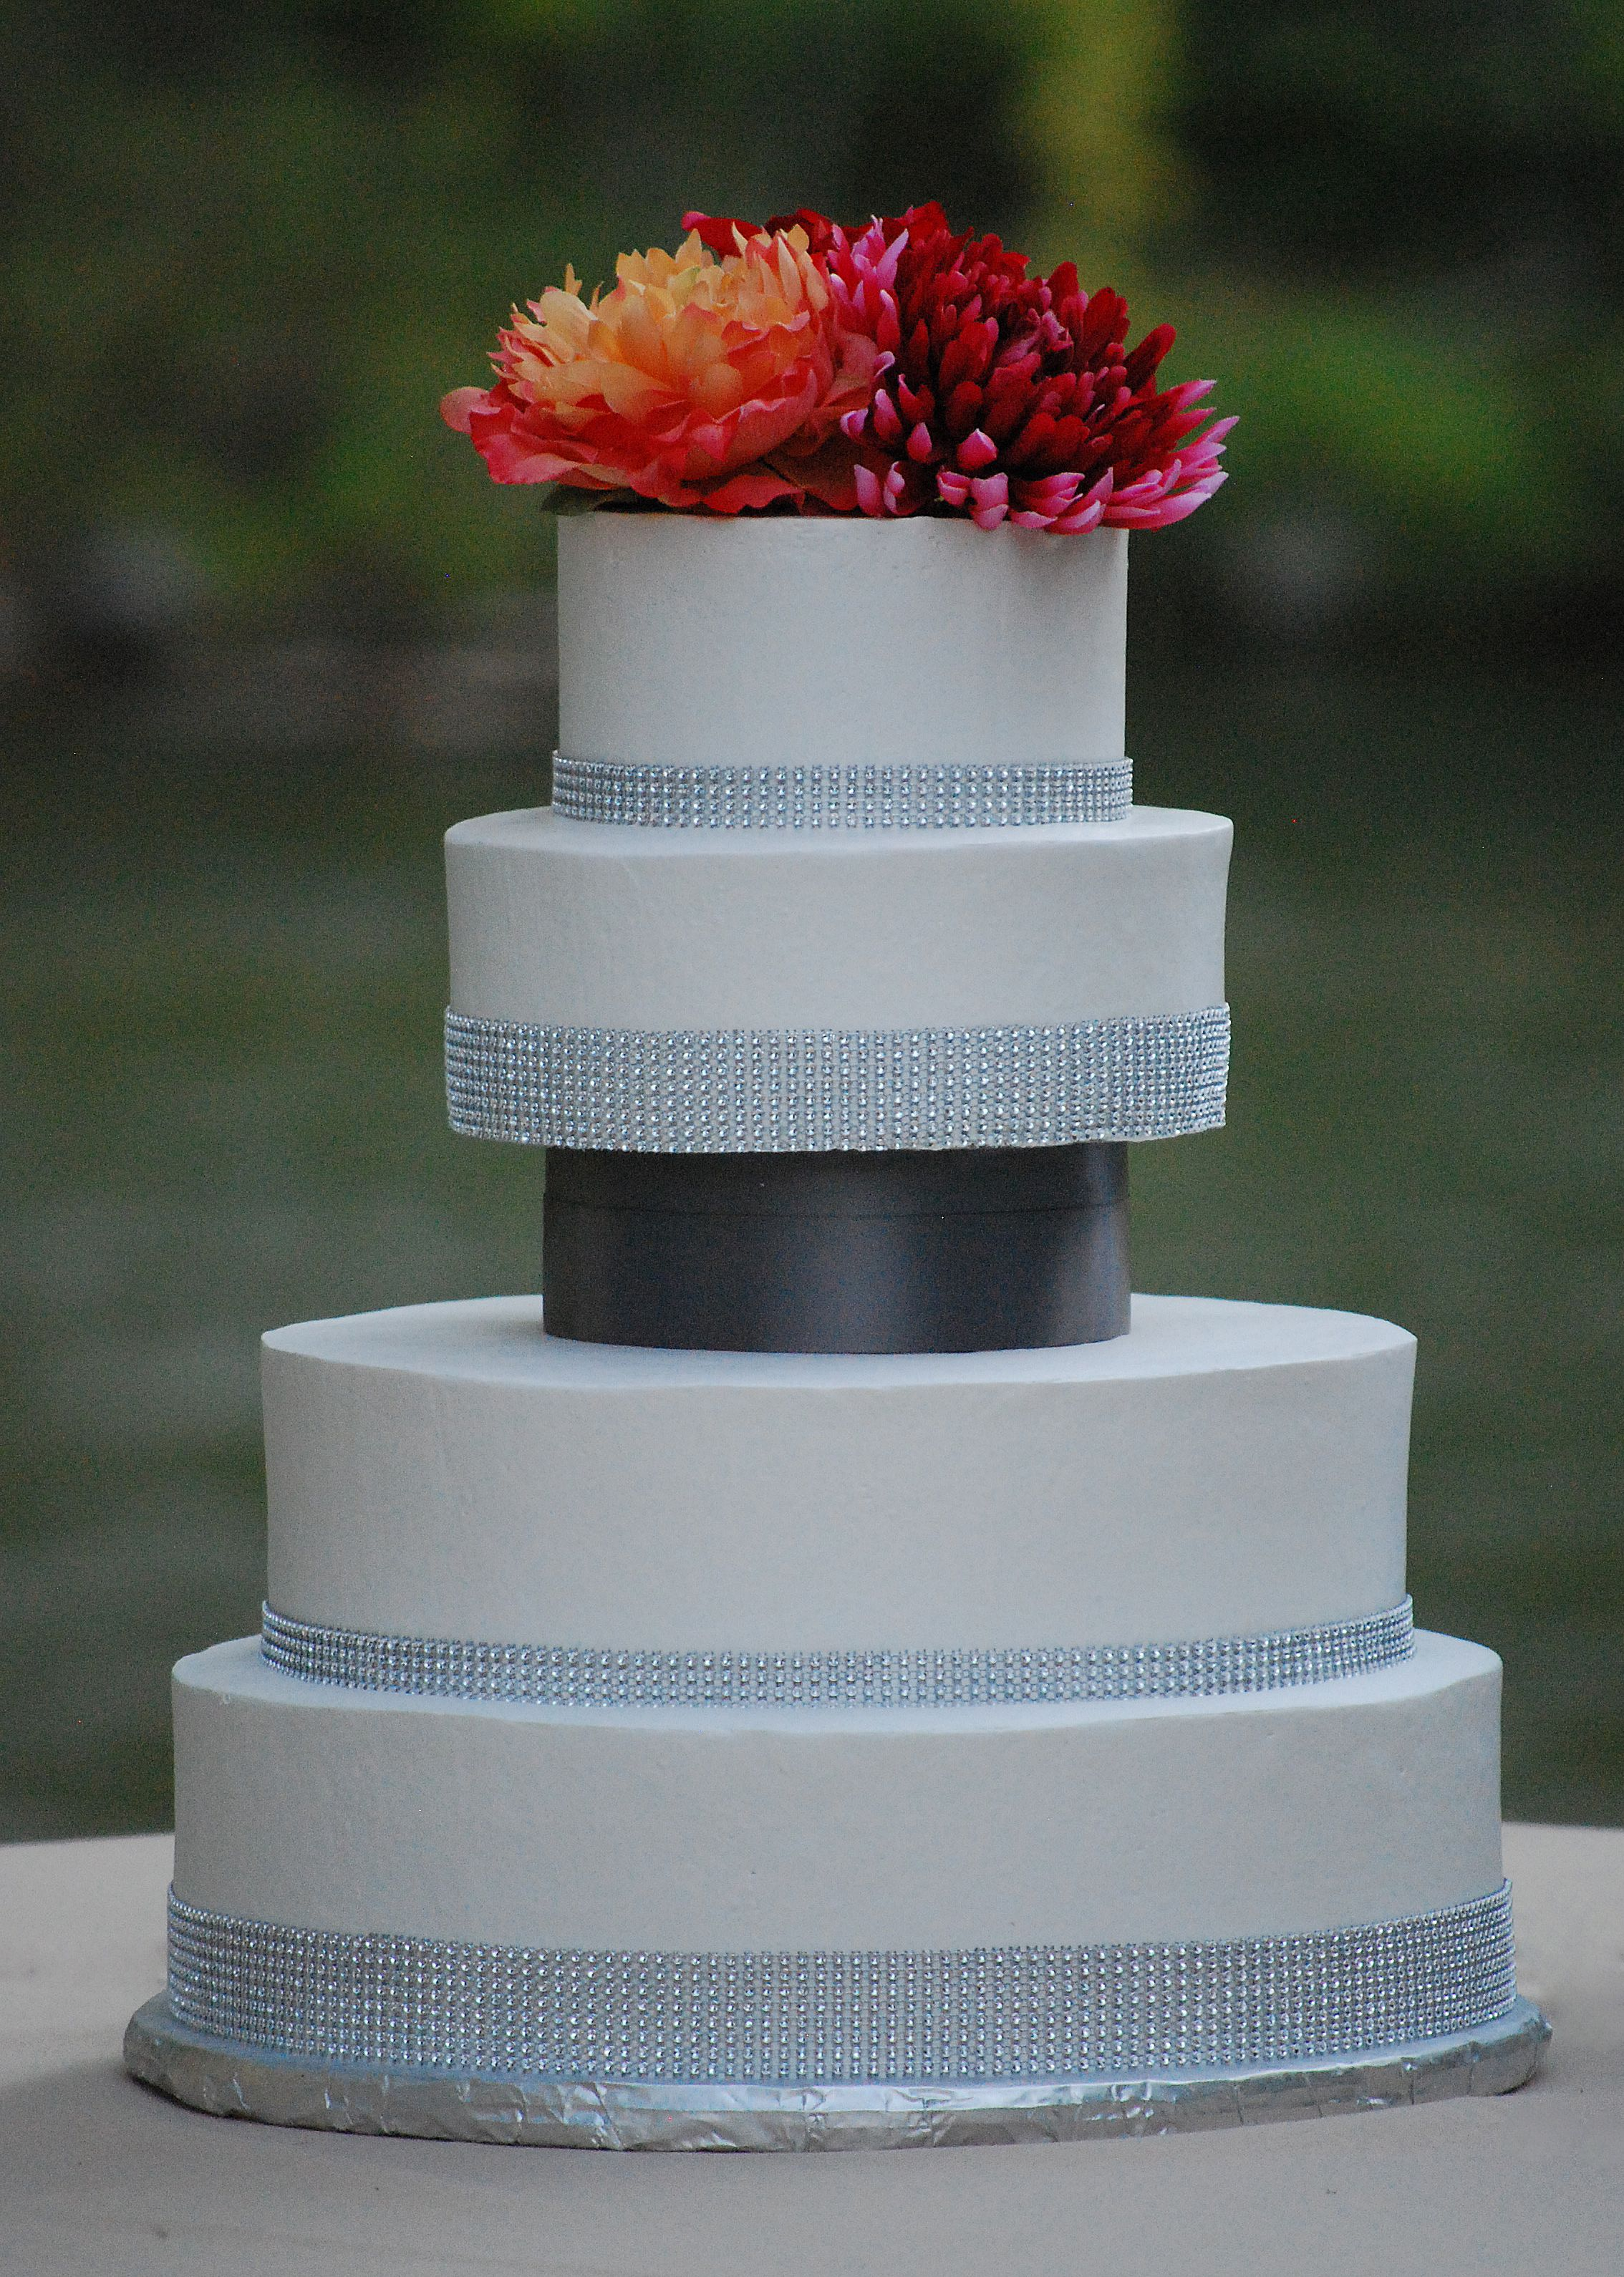 Round Wedding Cake With Silver Bling Borders Bold Orange And Pink Flowers